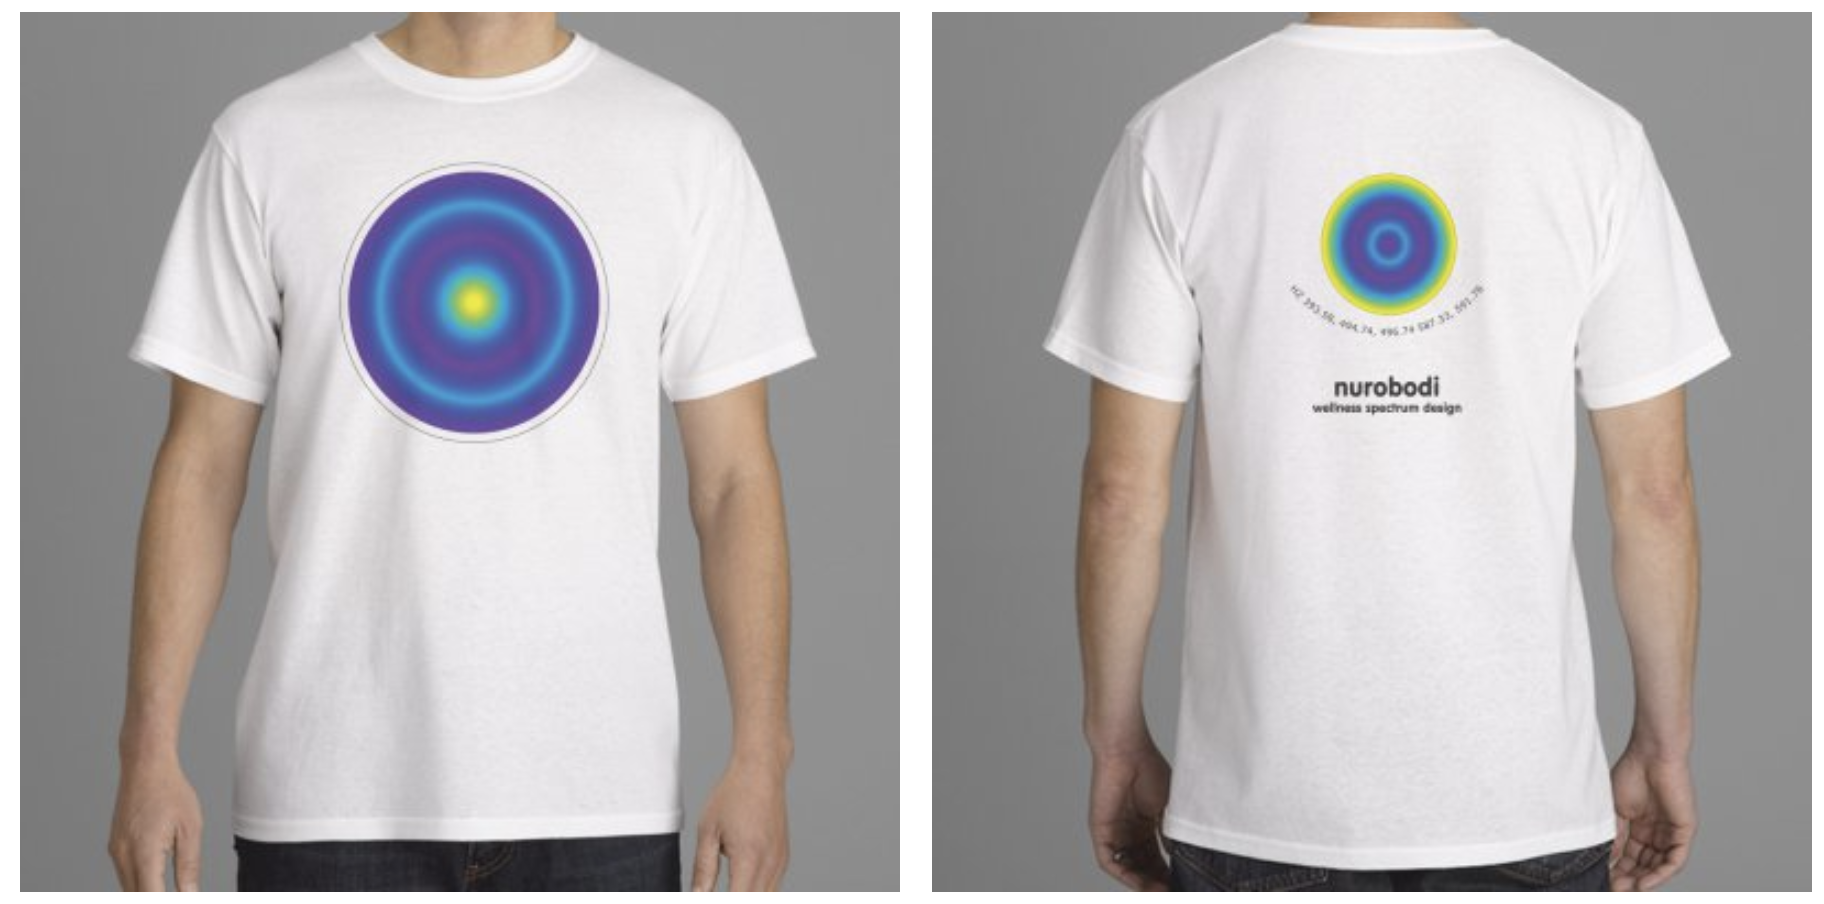 Wearable Profiles - Bespoke unisex T-shirts that display your personal Nurobodi Spectrum Profile in the form a colour data and Hz value visualisation